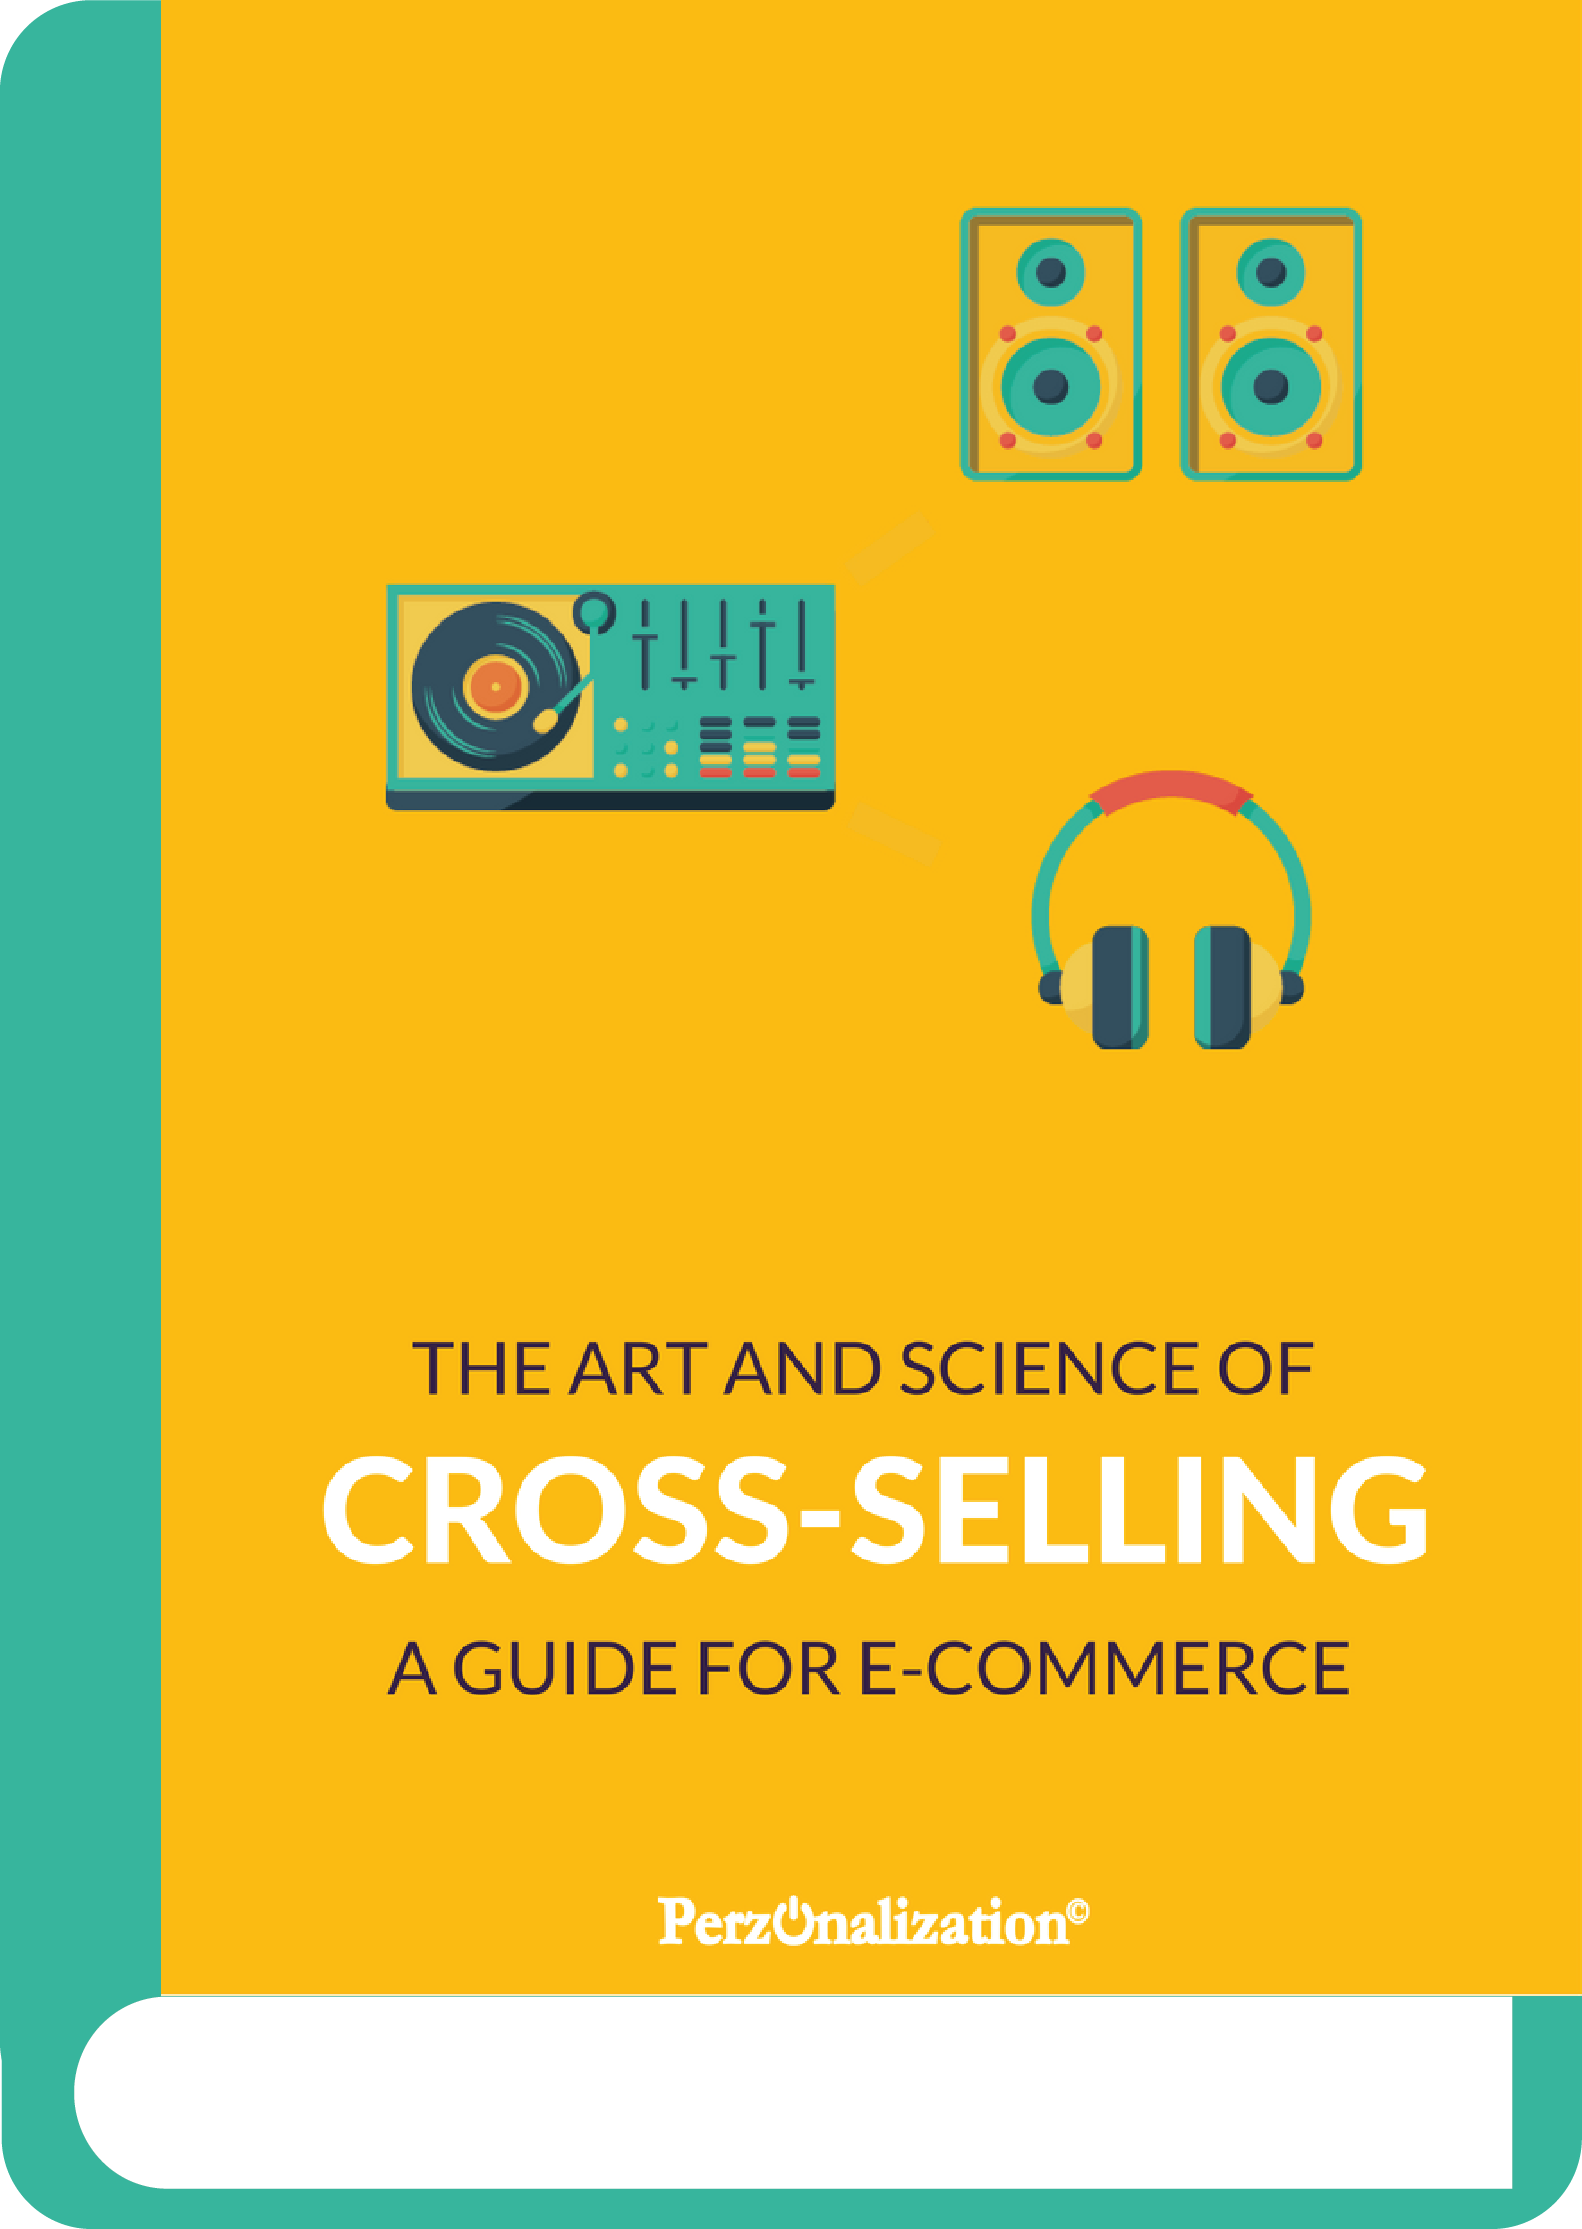 For online store owners or the eCommerce executives, cross selling is both an art and a science. In this eBook you're going to discover the great online cross-selling techniques.